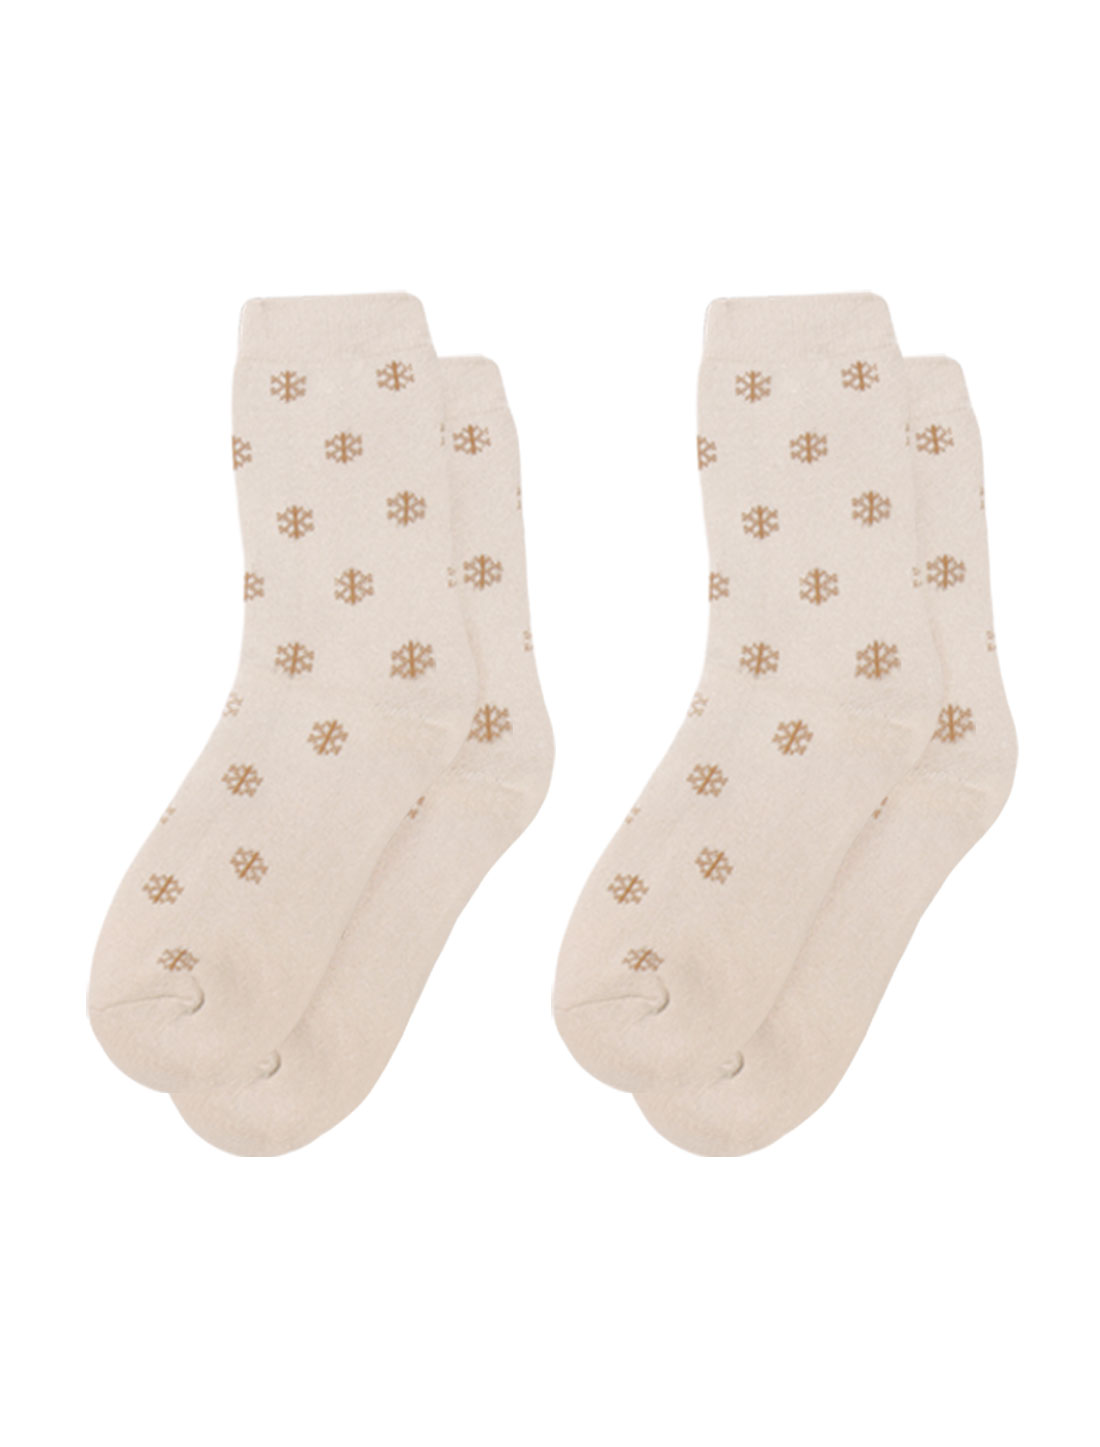 Lady Elastic Cuffs Snowflake Pattern Ankle High Socks 2 pairs Beige 9-11